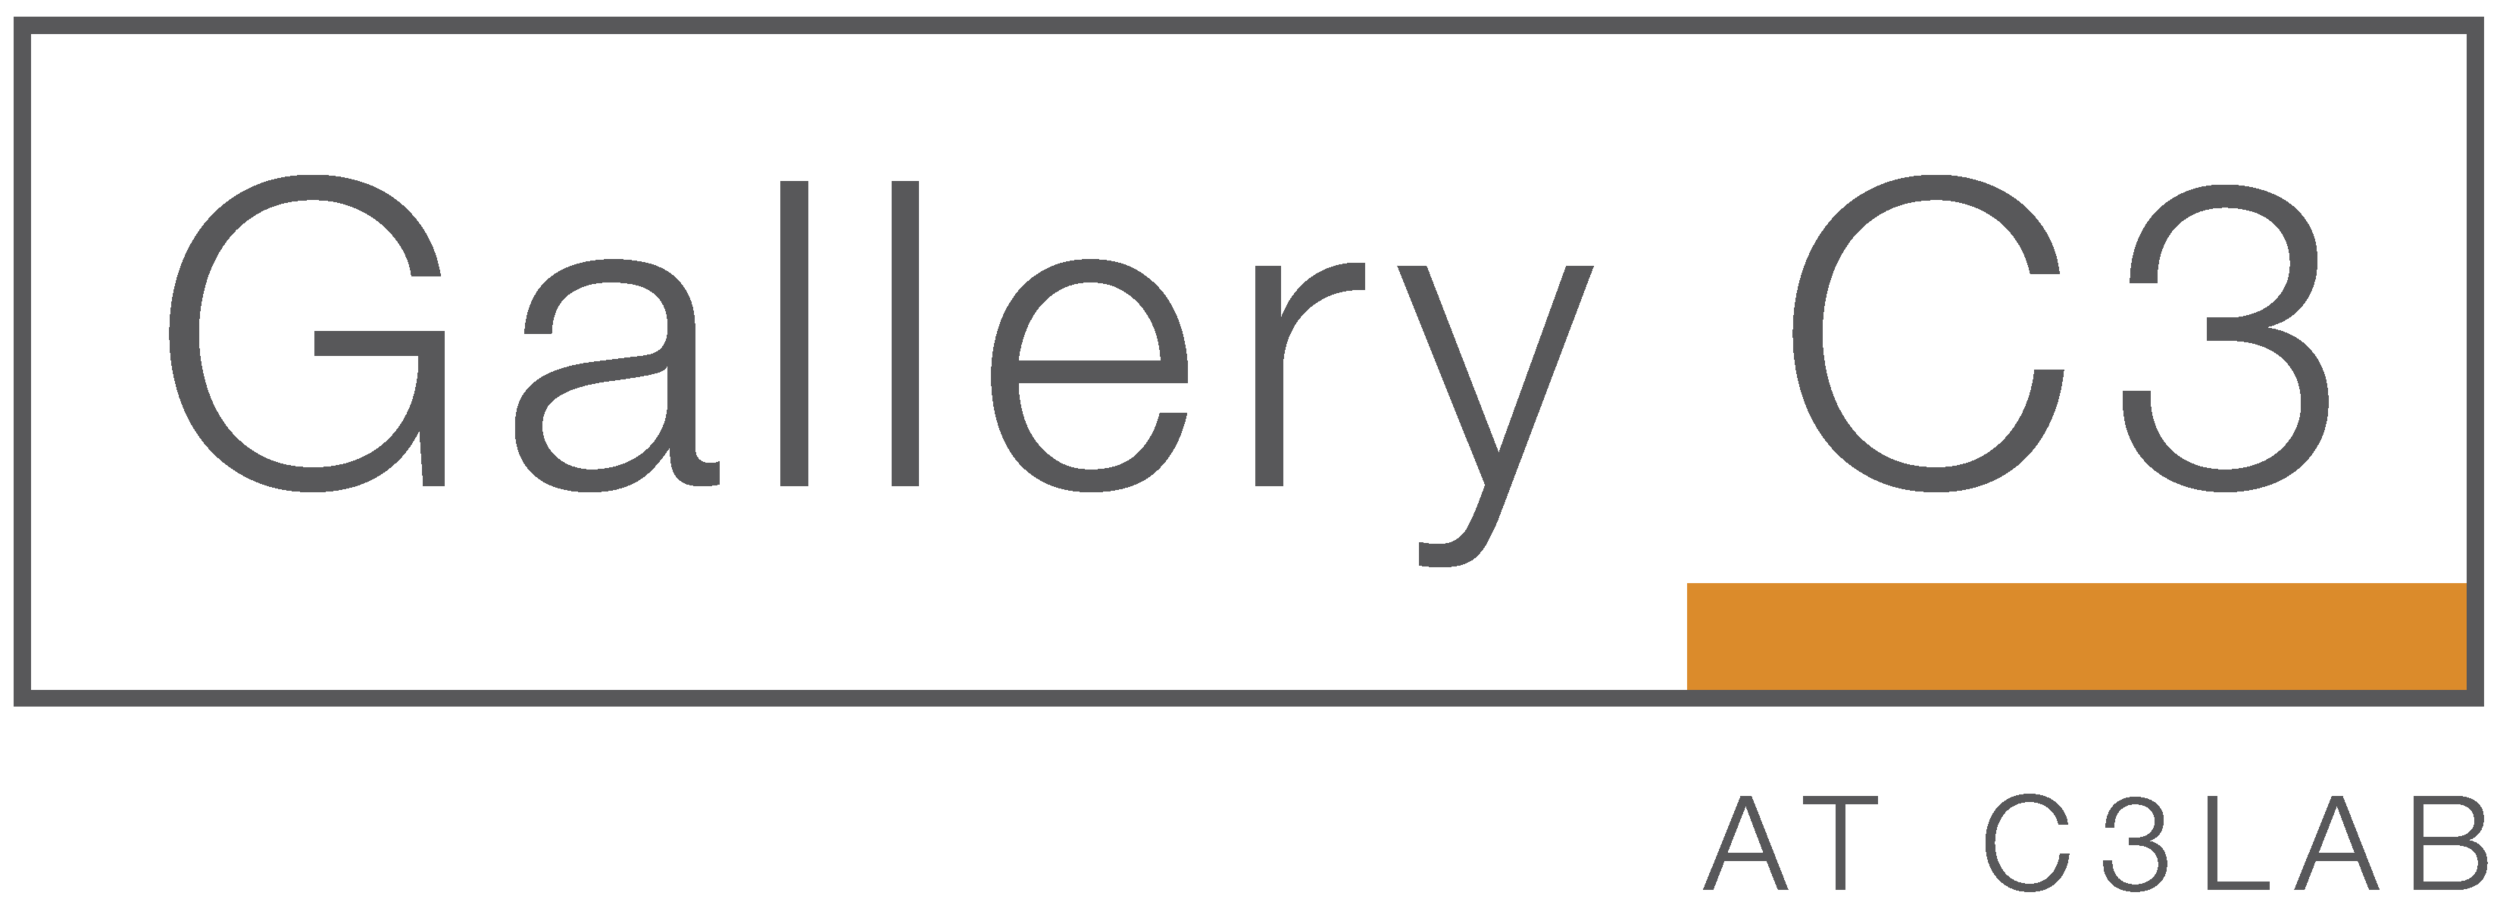 GalleryC3 Logo-01.png